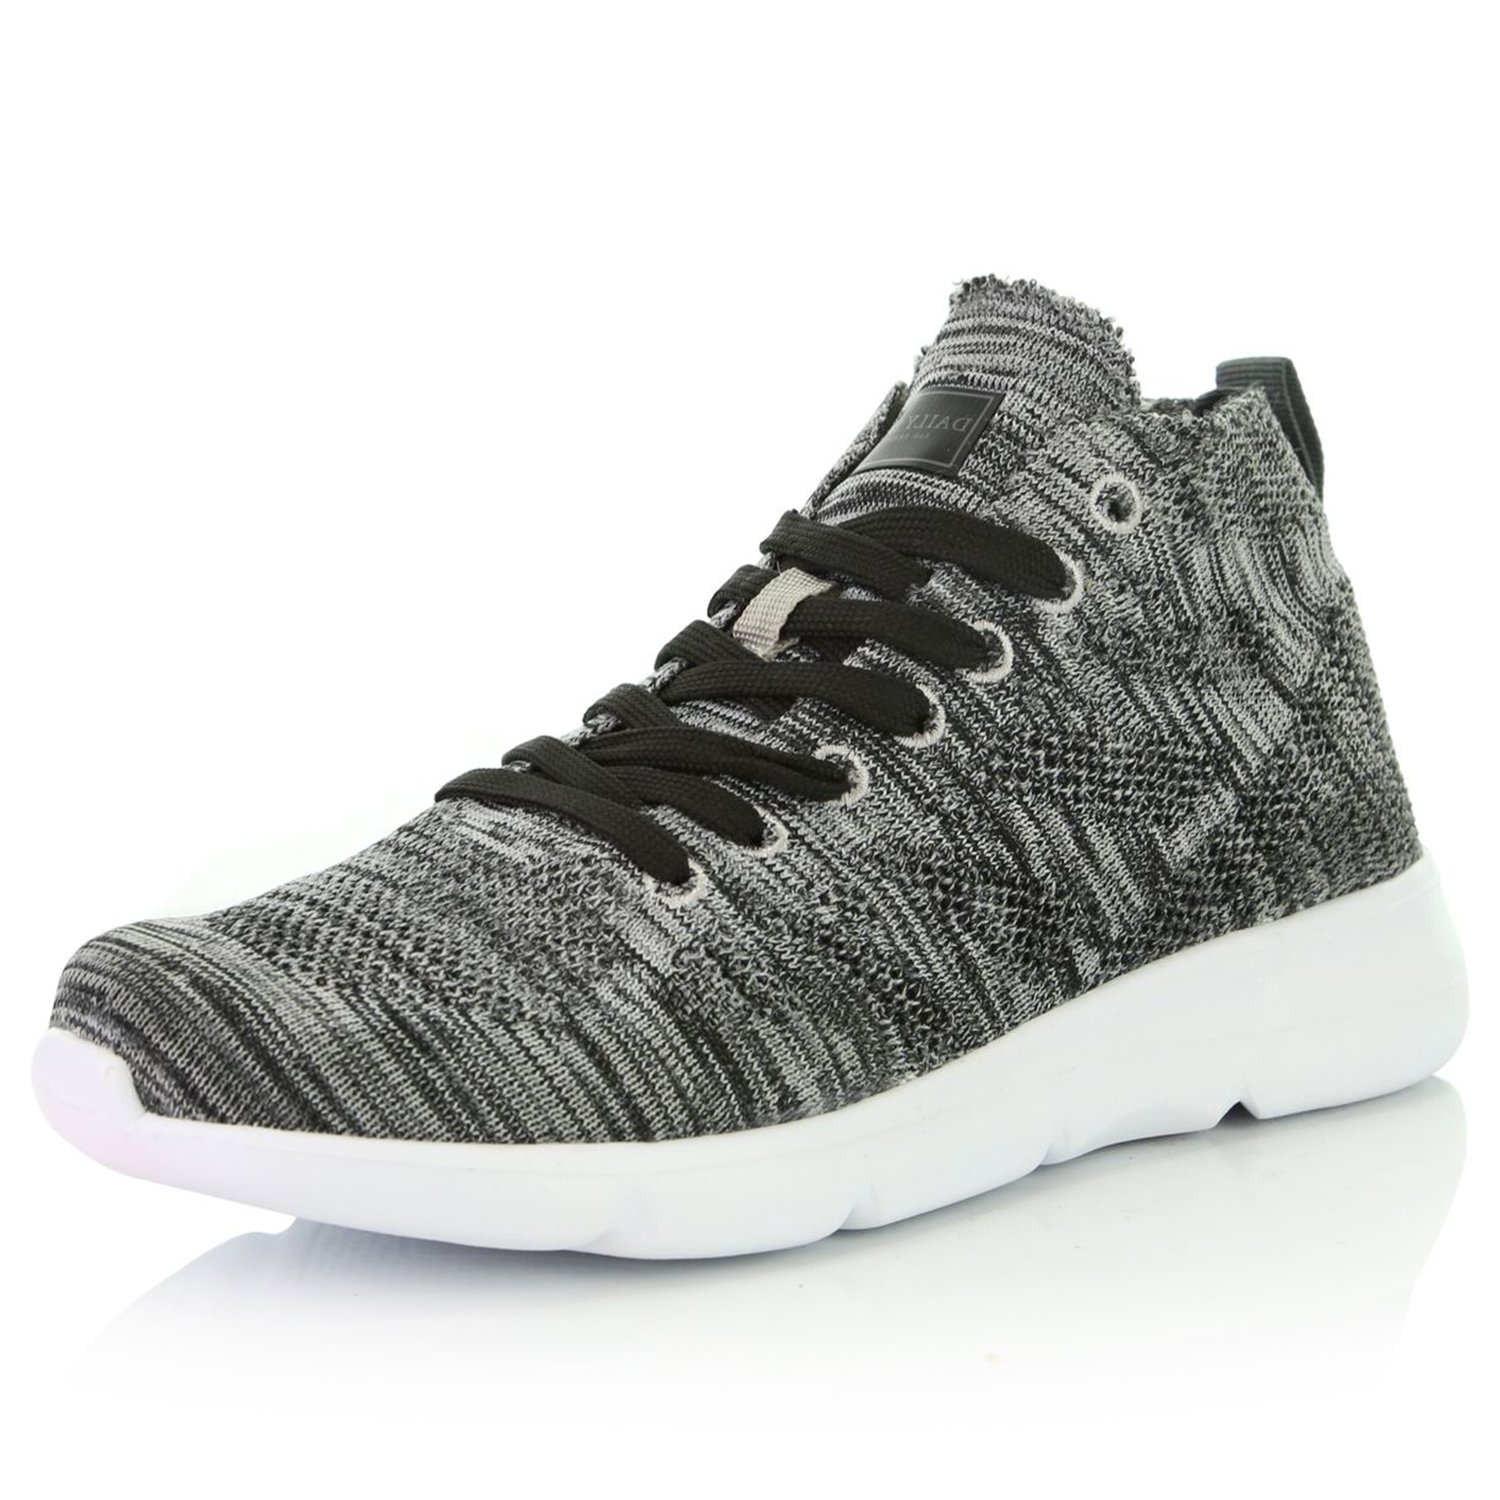 DailyShoes Women's Breathable Mesh Lightweight Casual Fashion Sneakers Walking Shoes, Grey Mesh, 8.5 B(M) US